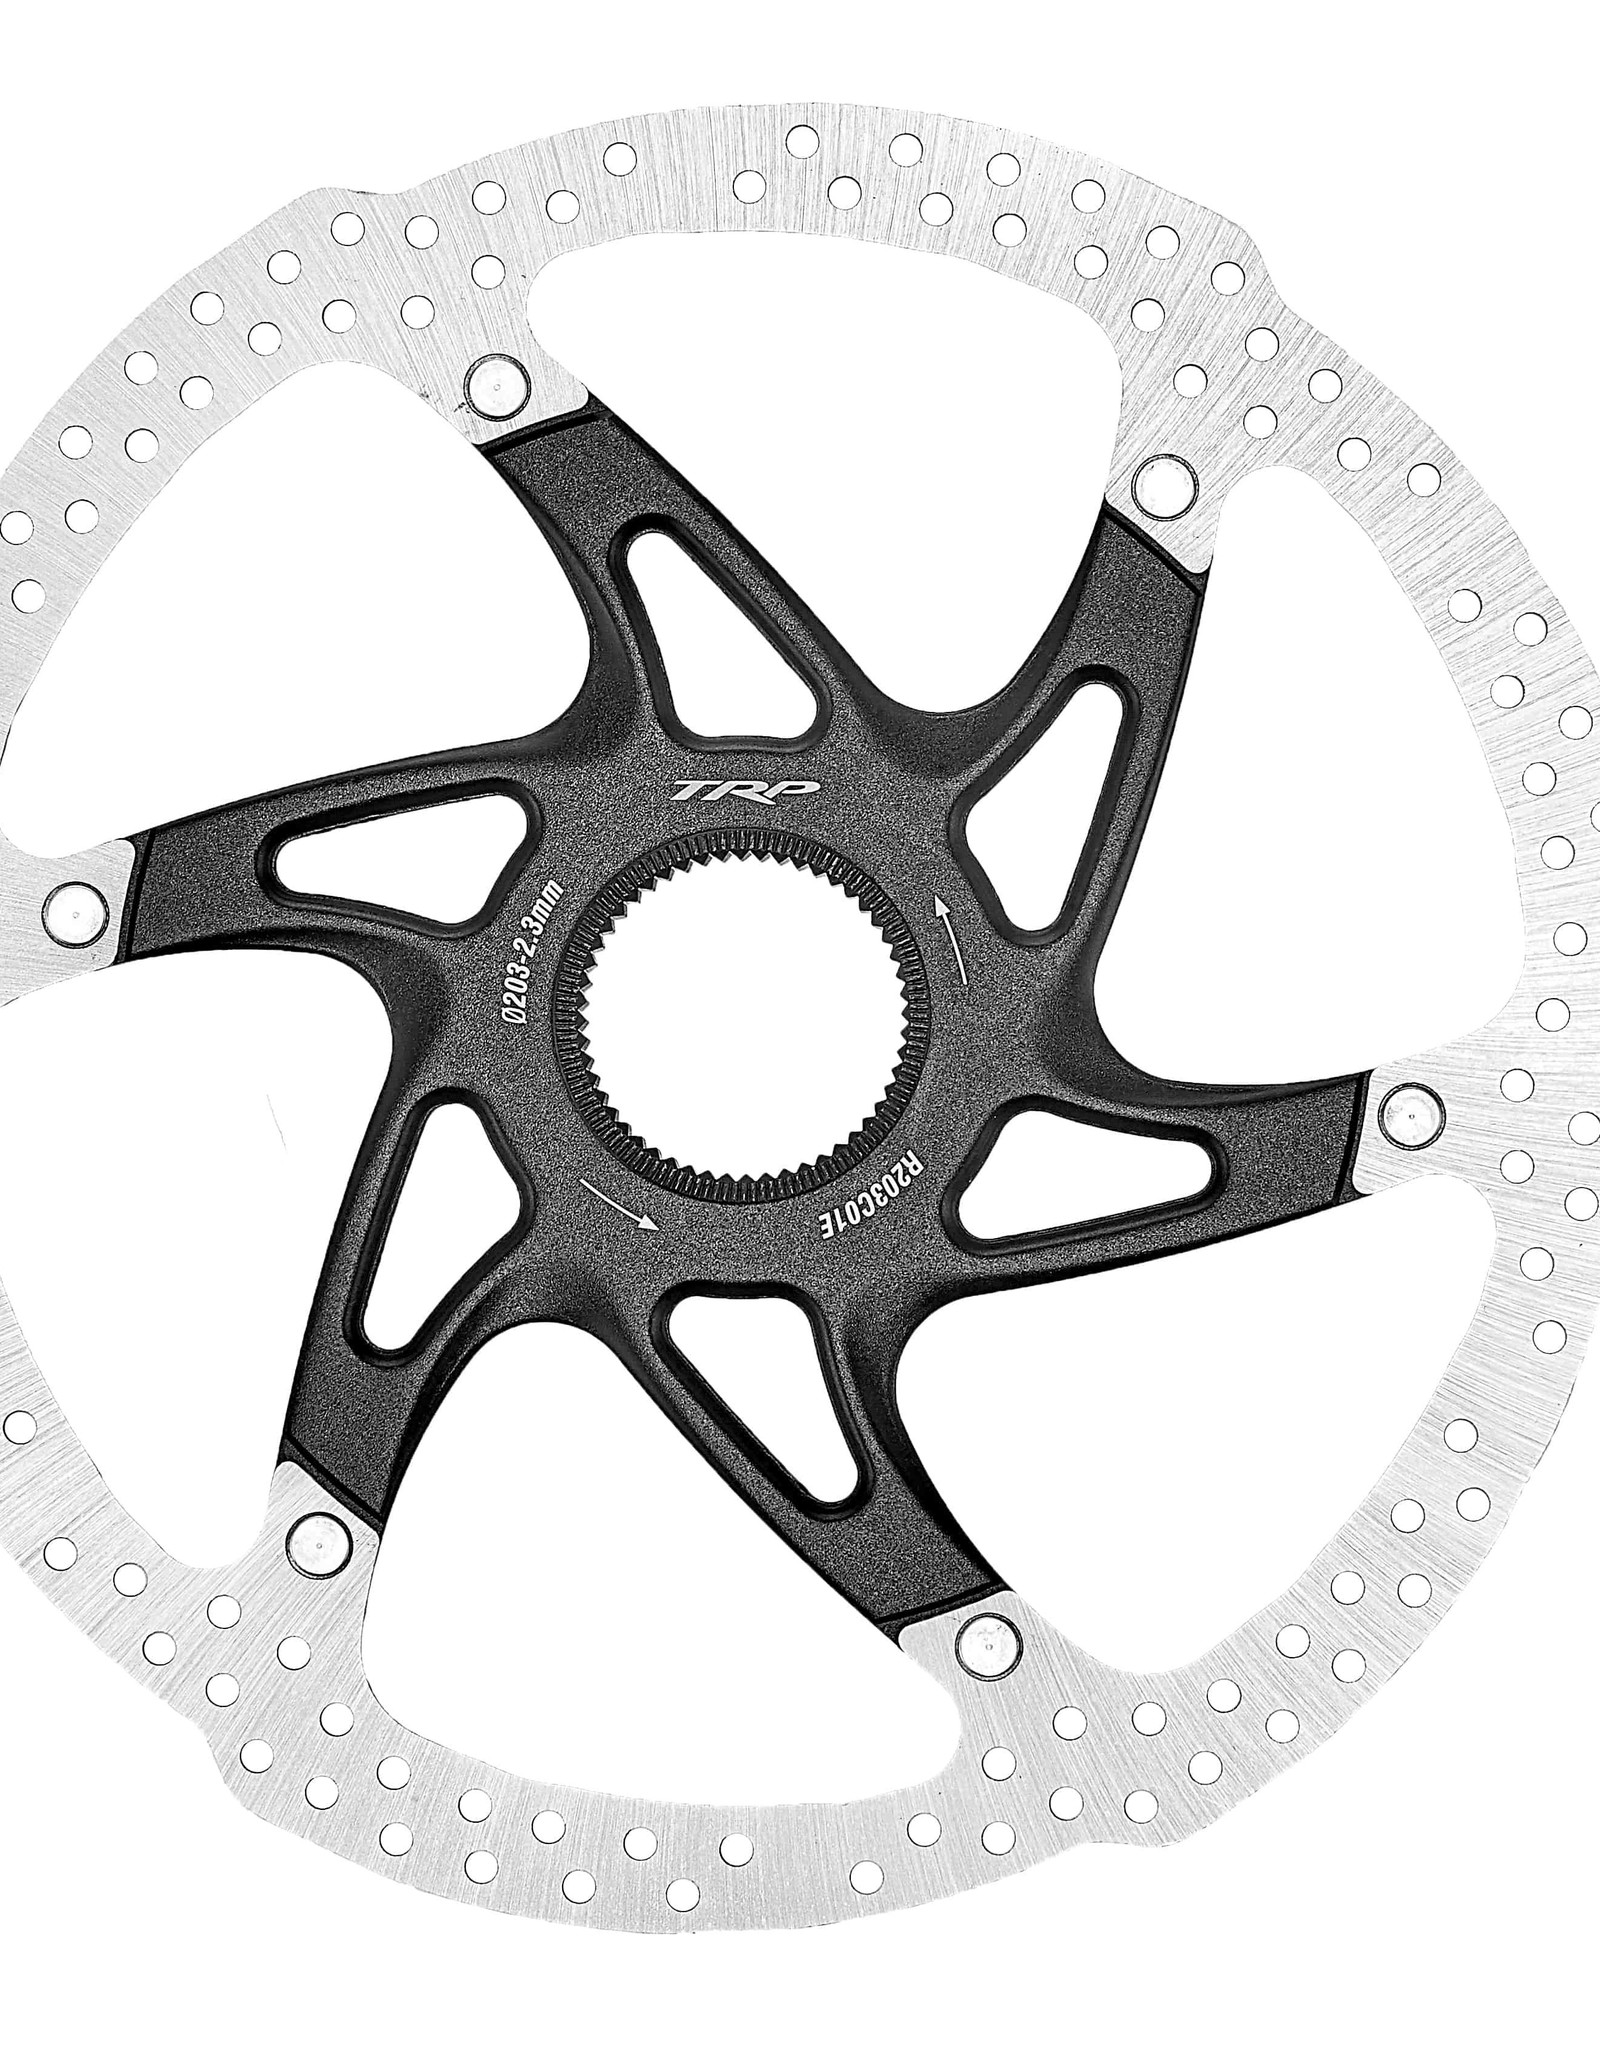 TRP TRP R1, CENTER LOCK 2.3MM ROTOR DUAL COMPOUND